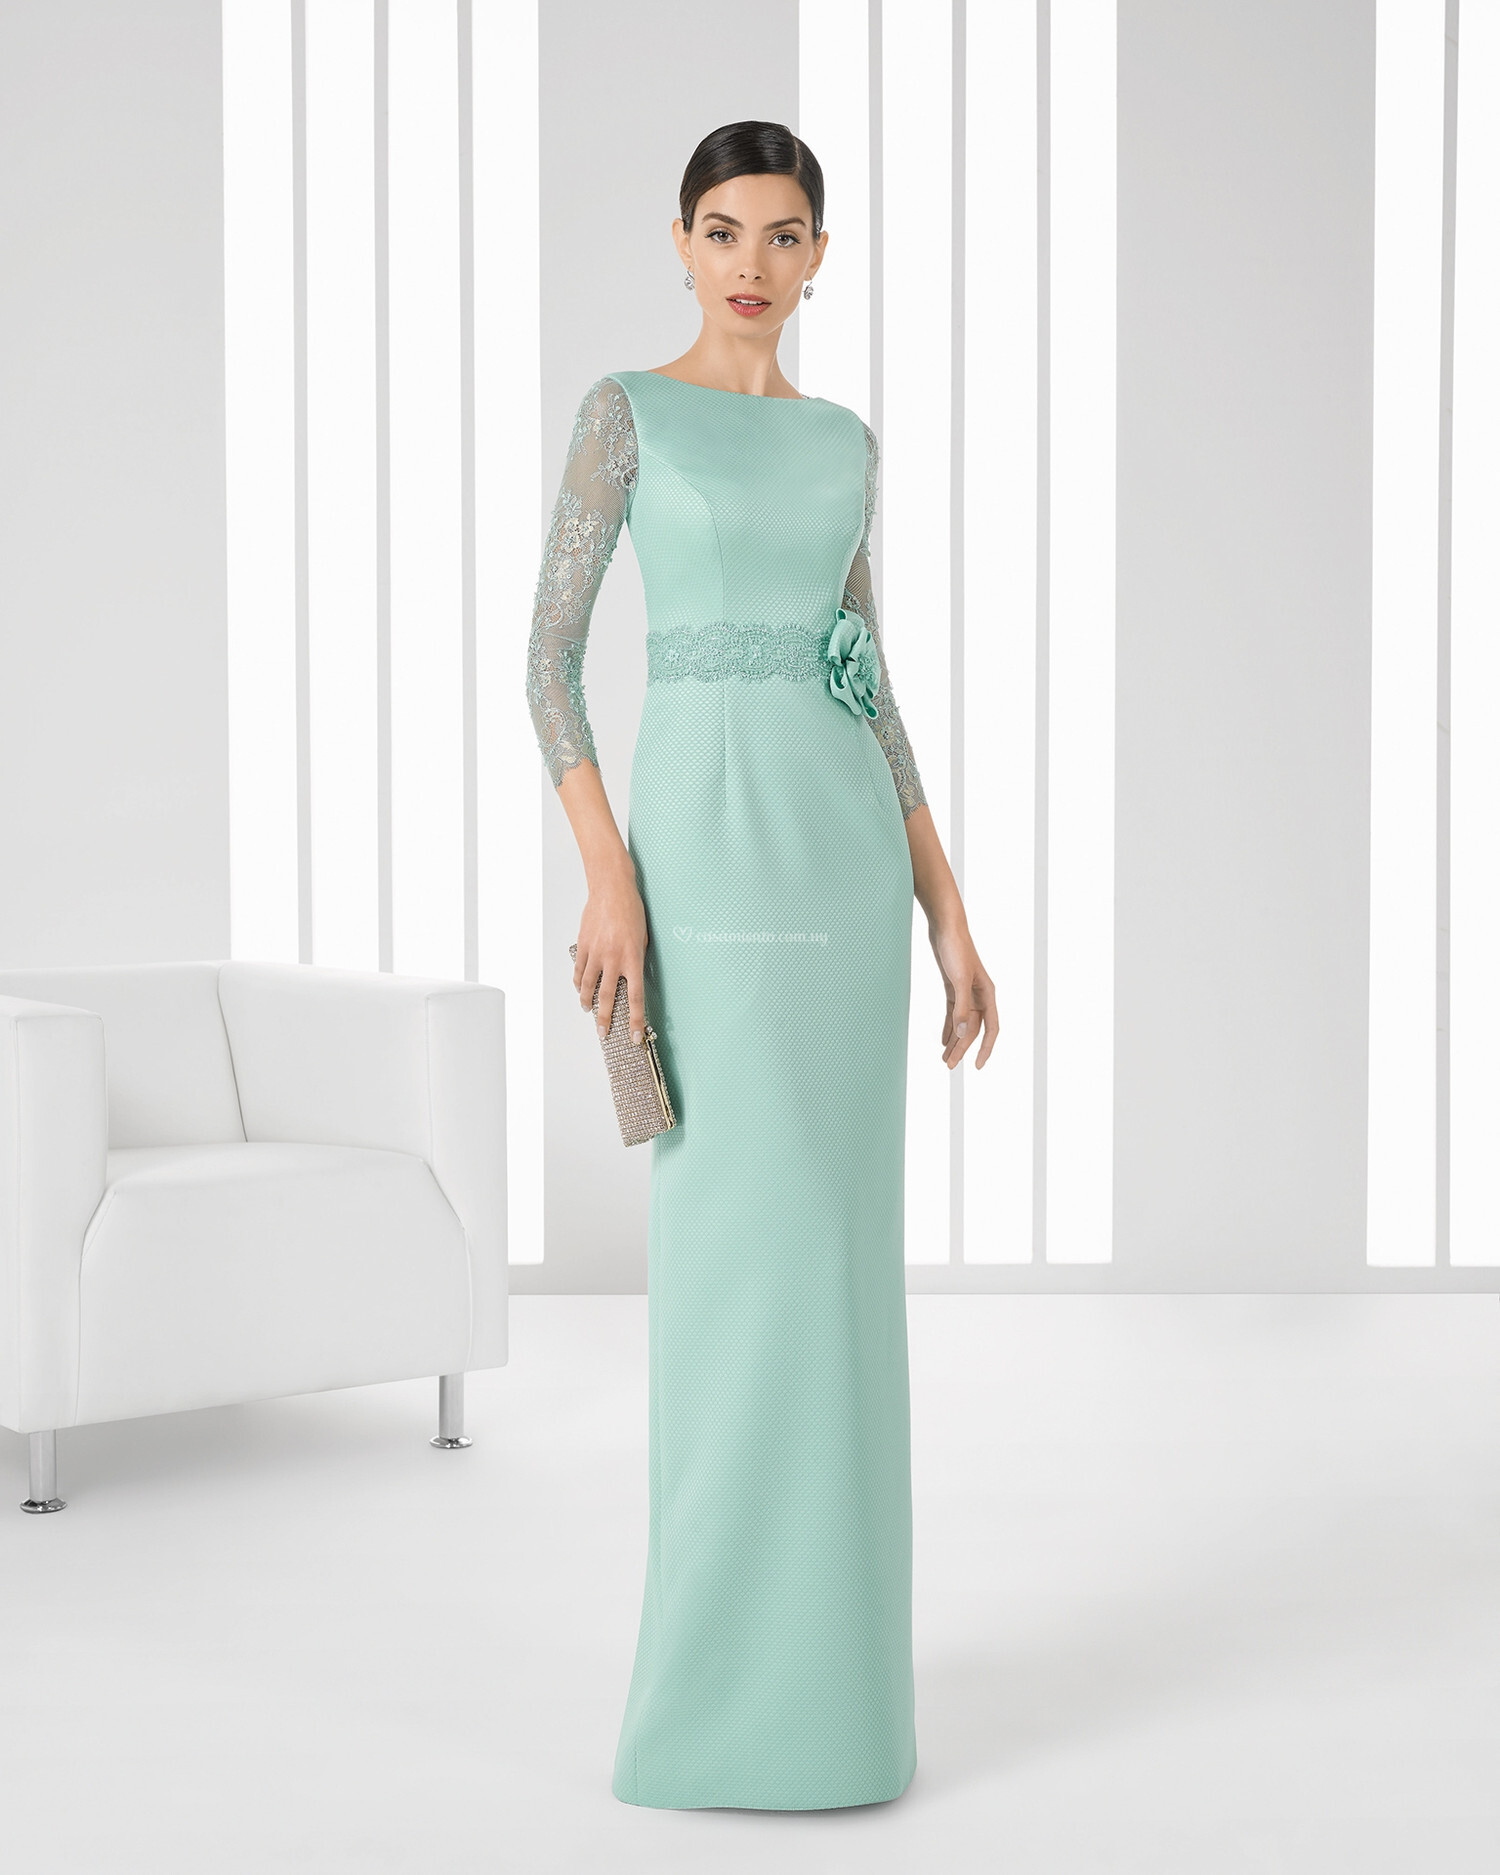 Funky Vestido Novia Griego Model - All Wedding Dresses ...